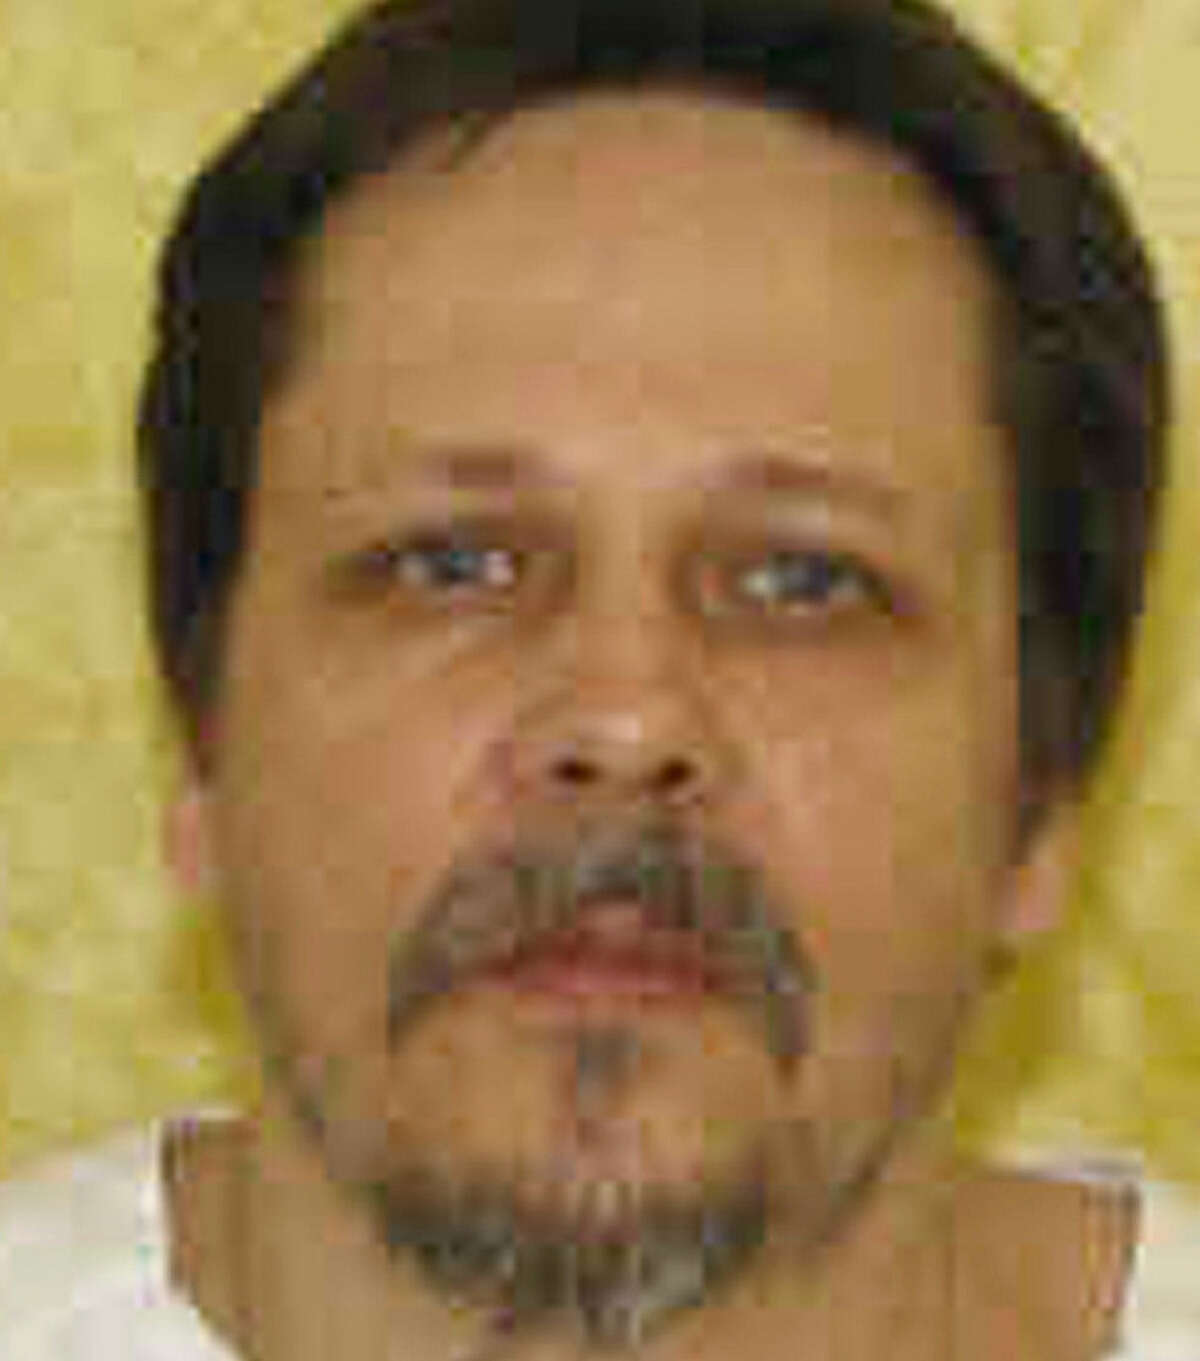 Dennis McGuire, 53, was executed for the 1989 rape and killing of a newlywed who was eight months pregnant. A federal judge ordered Ohio to photo- graph and preserve the execution drugs' packaging boxes and vials and the syringes that were used.